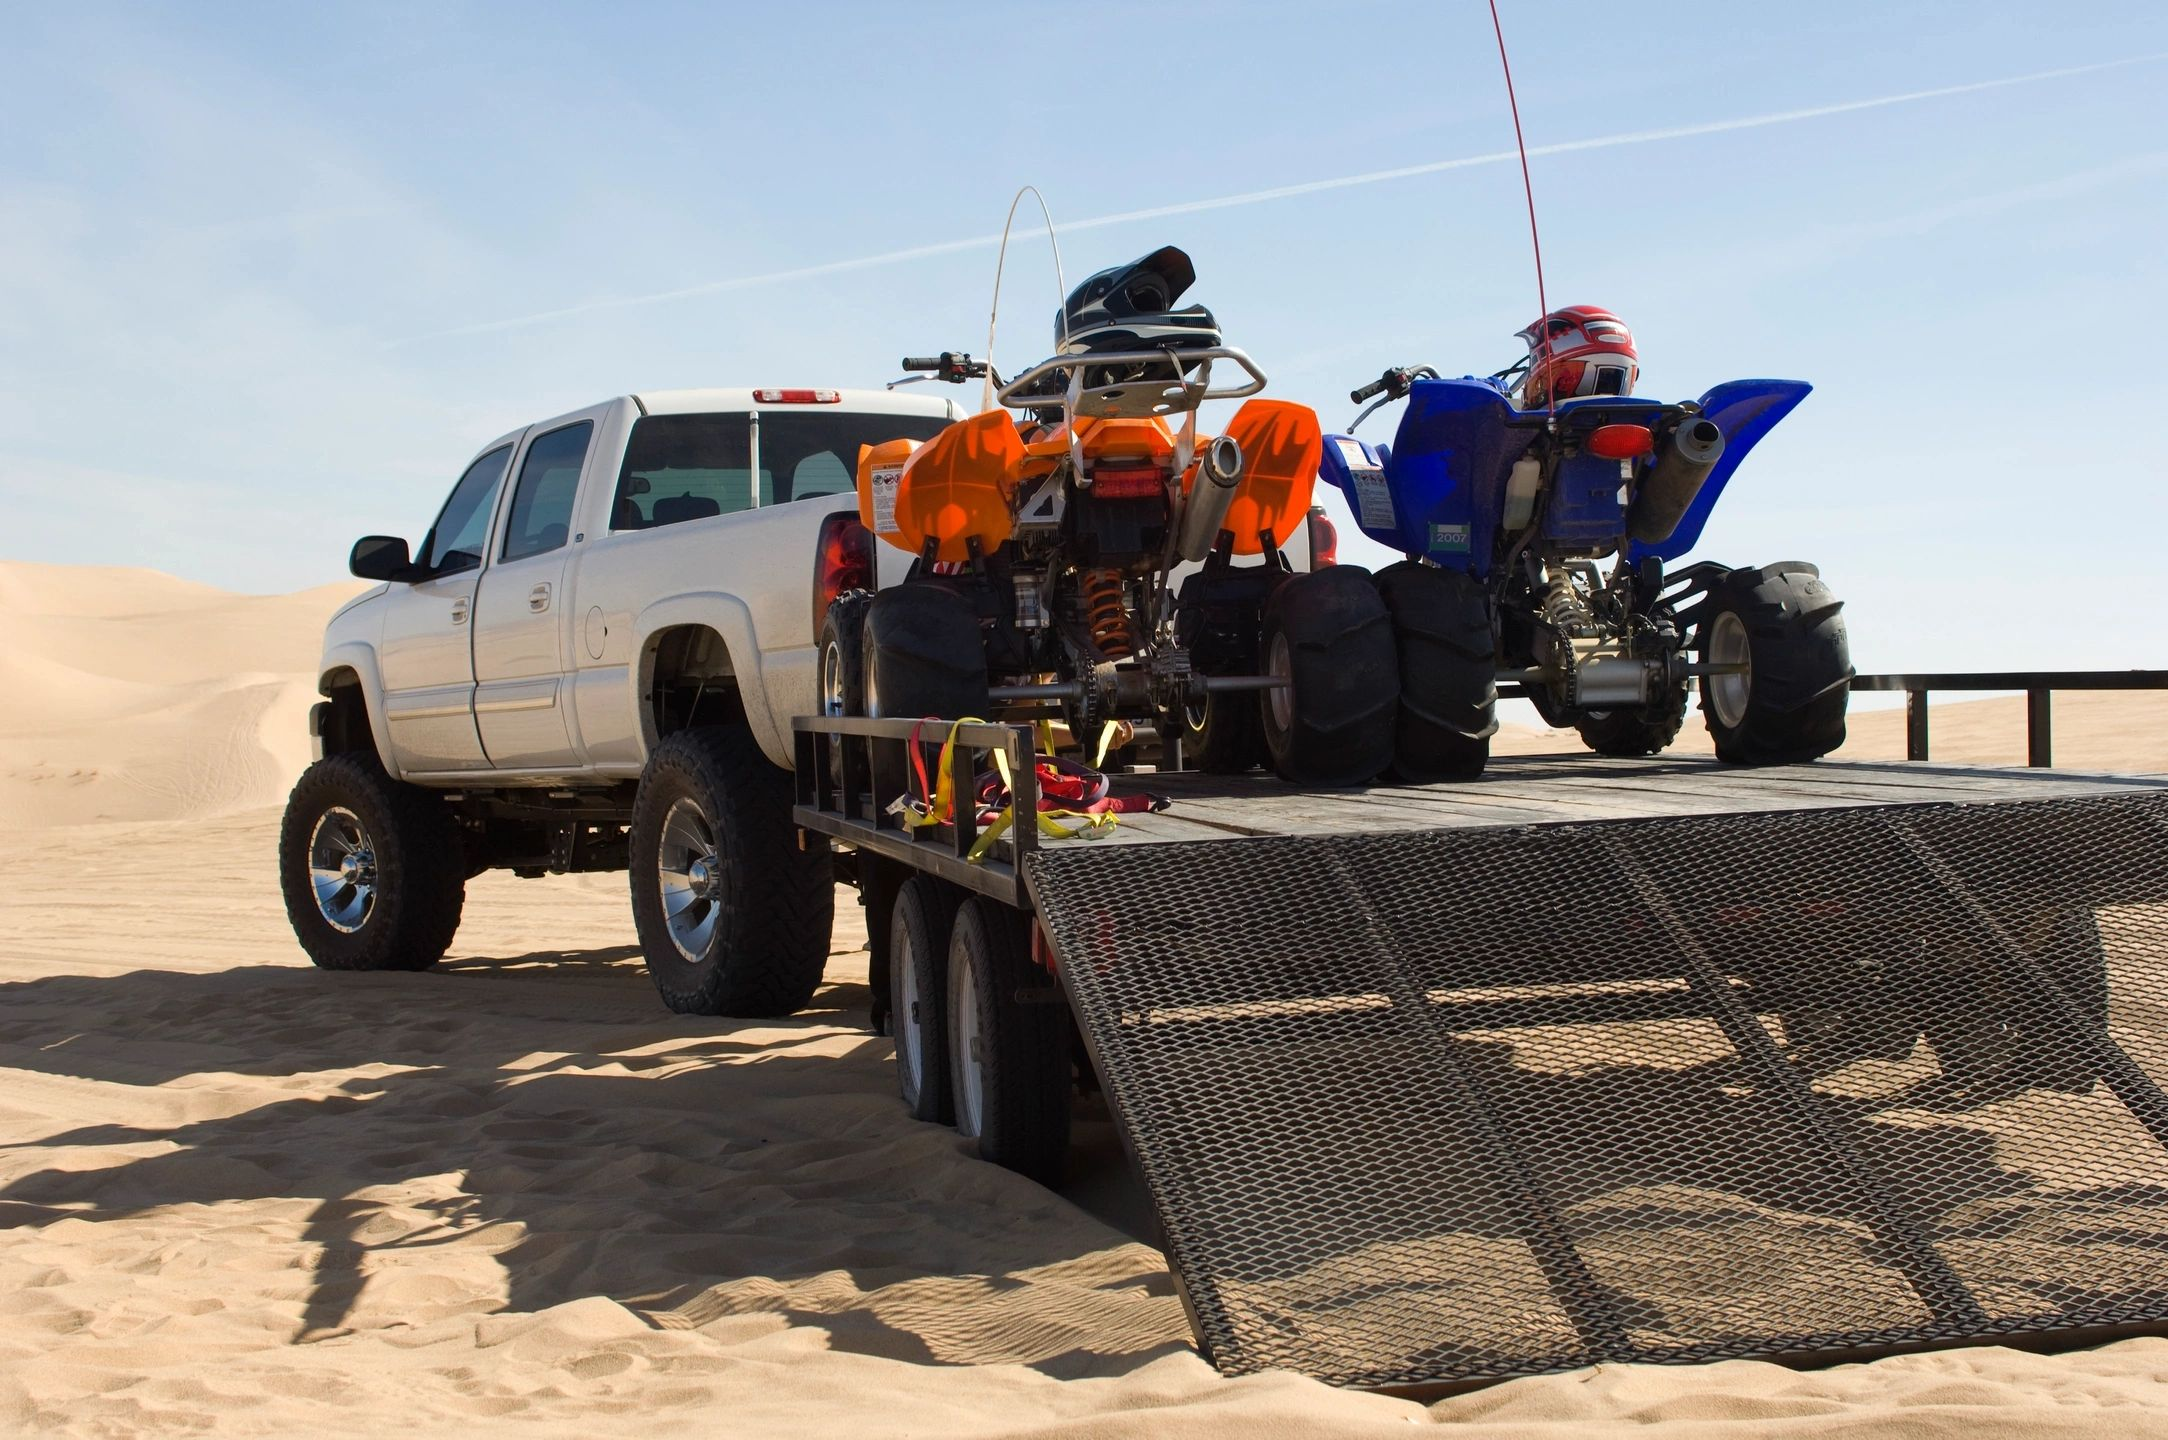 ATVs on a Trailer at the Dunes